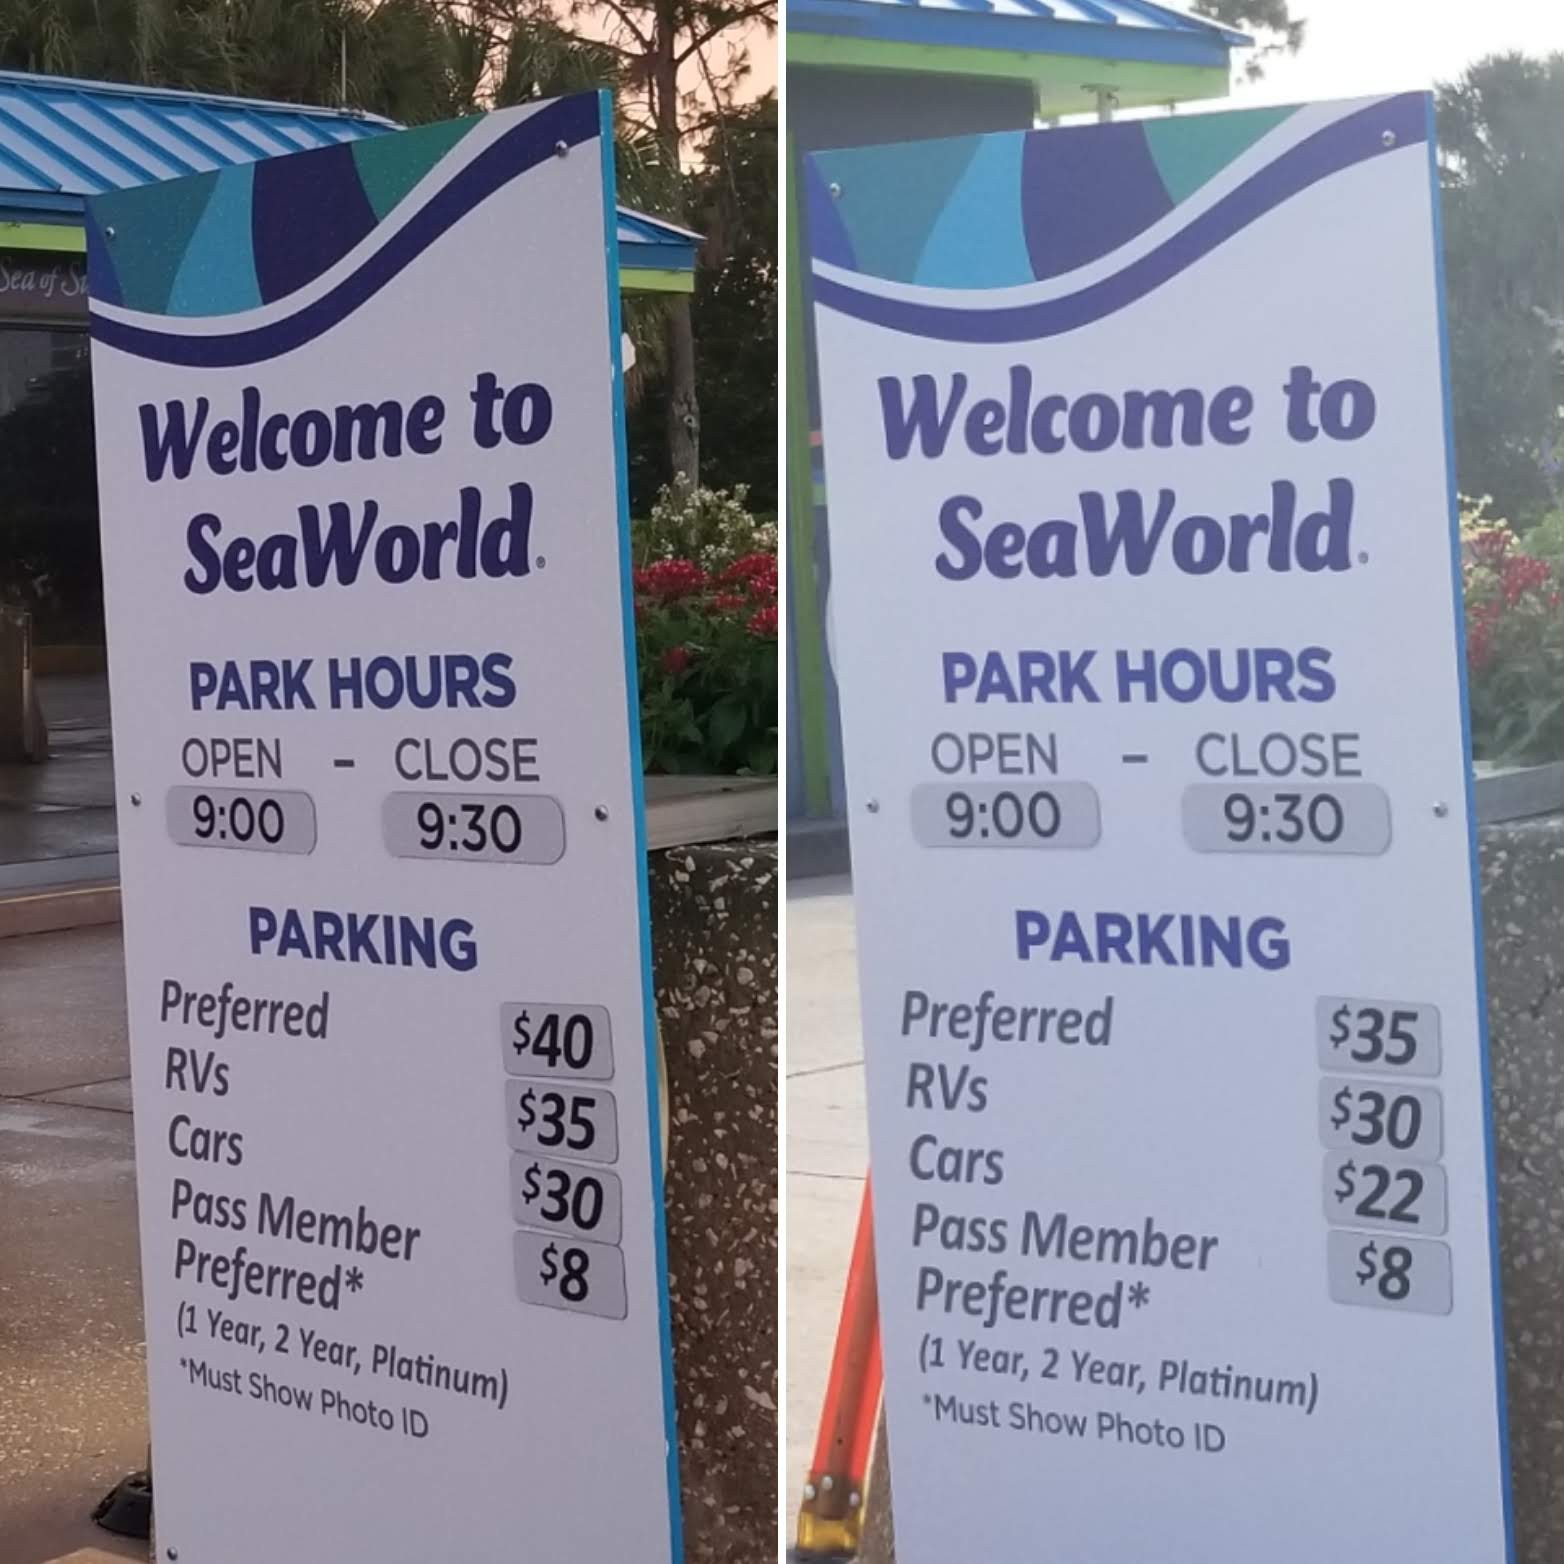 Seaworld S New Parking Prices Make Absolutely No Sense Blogs